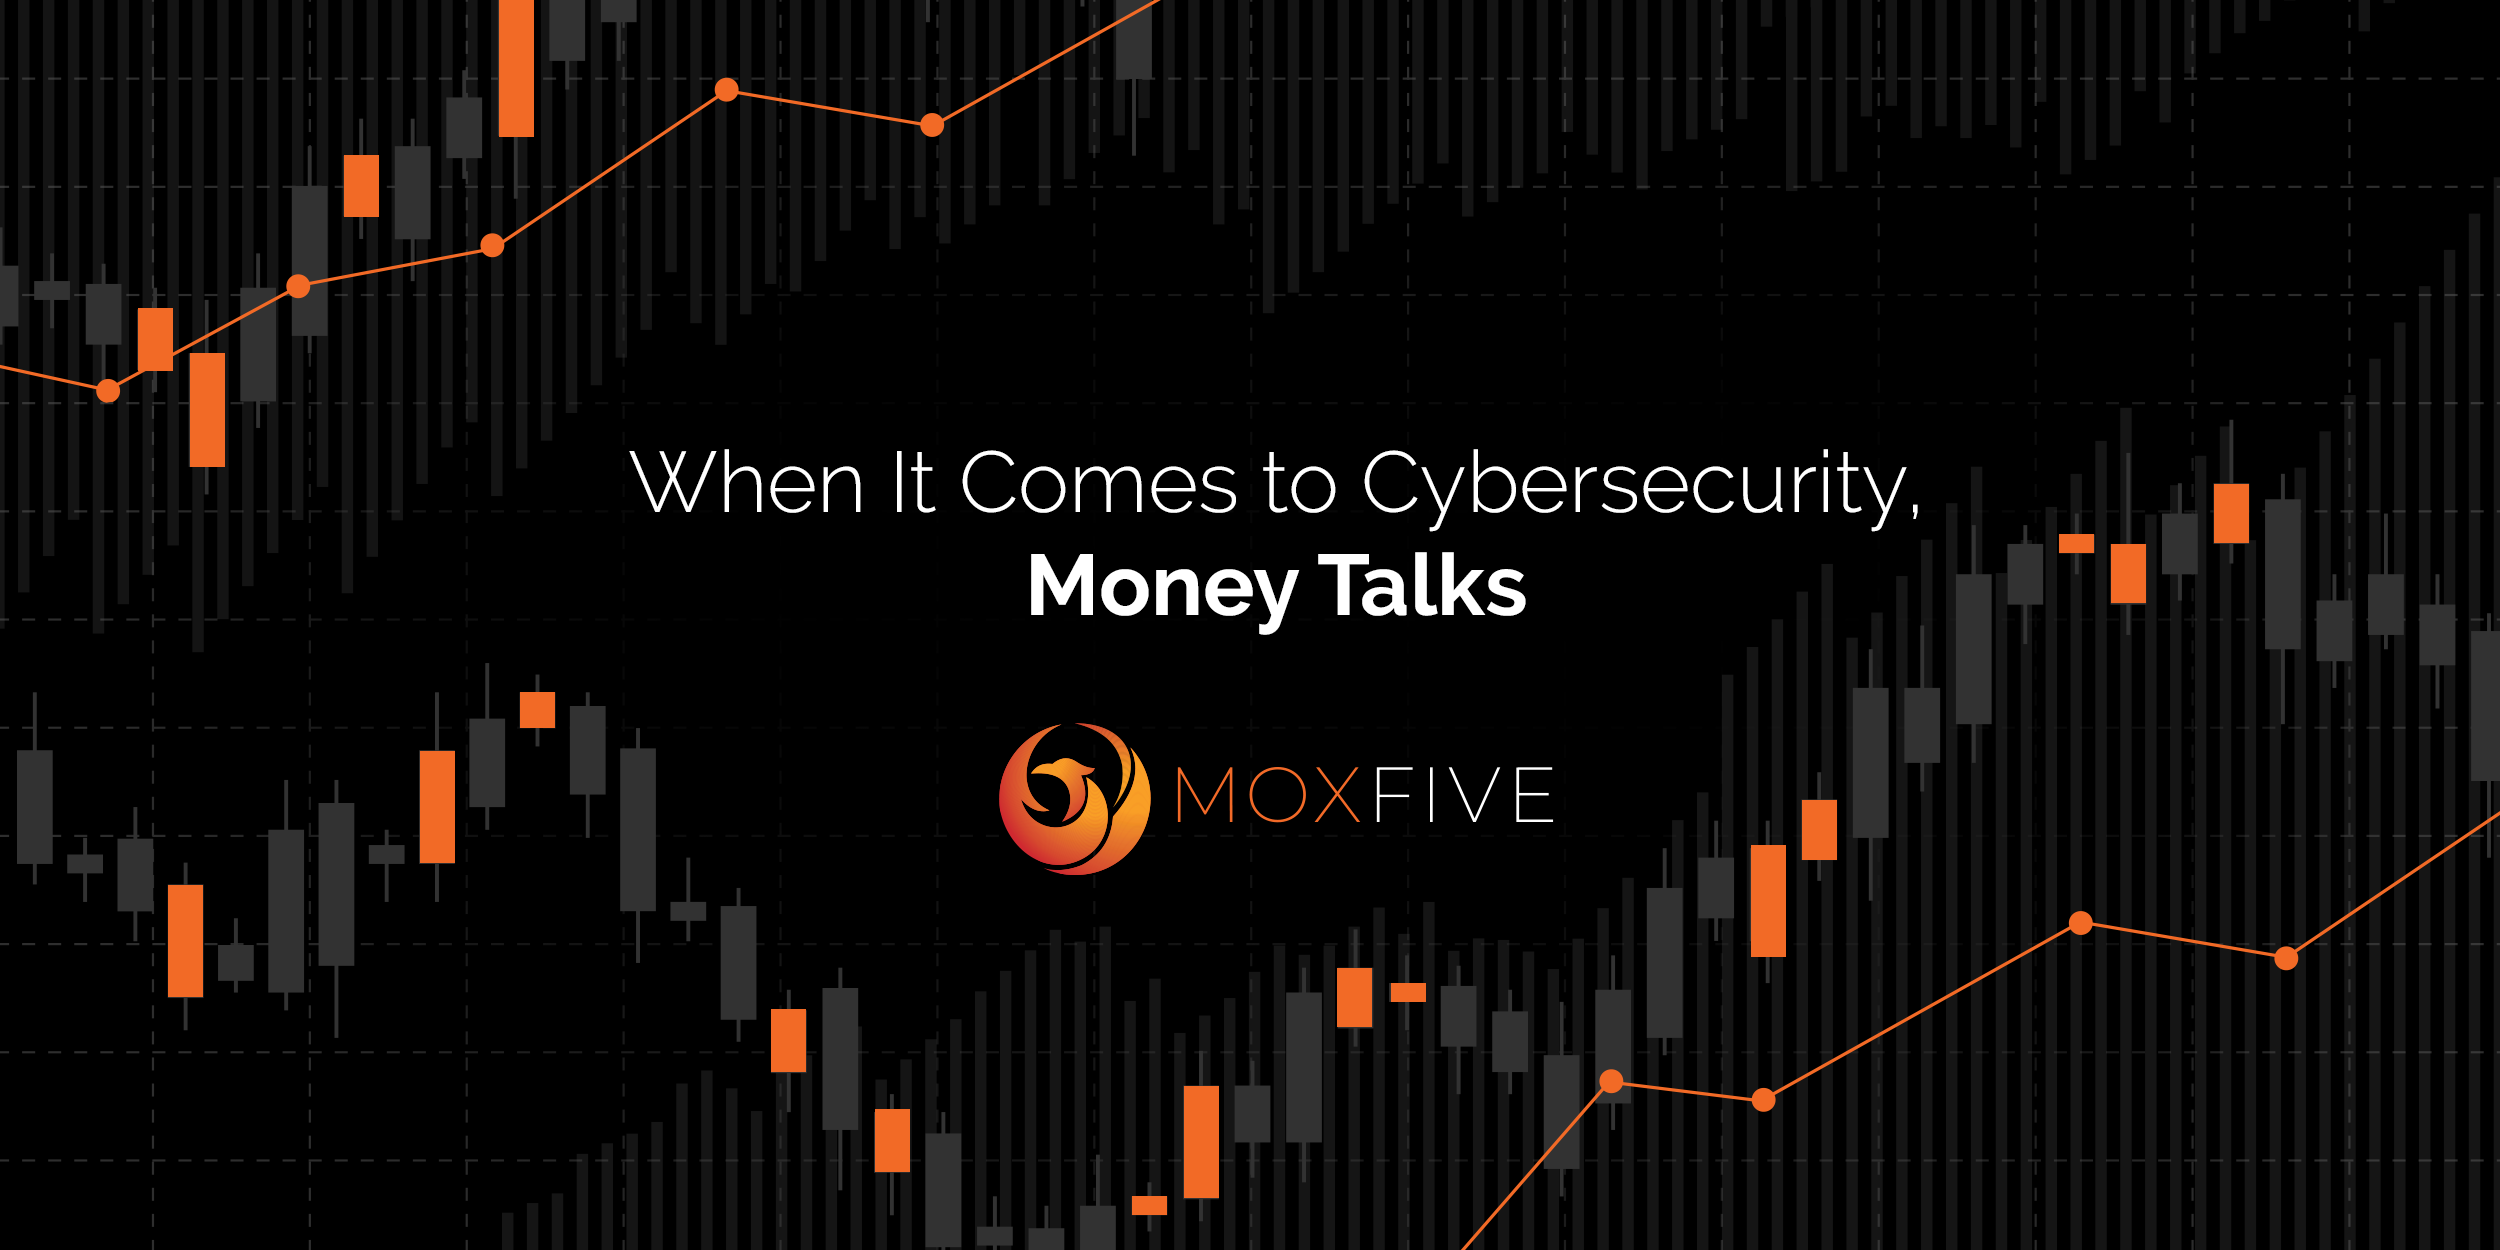 When it Comes to Cybersecurity, Money Talks